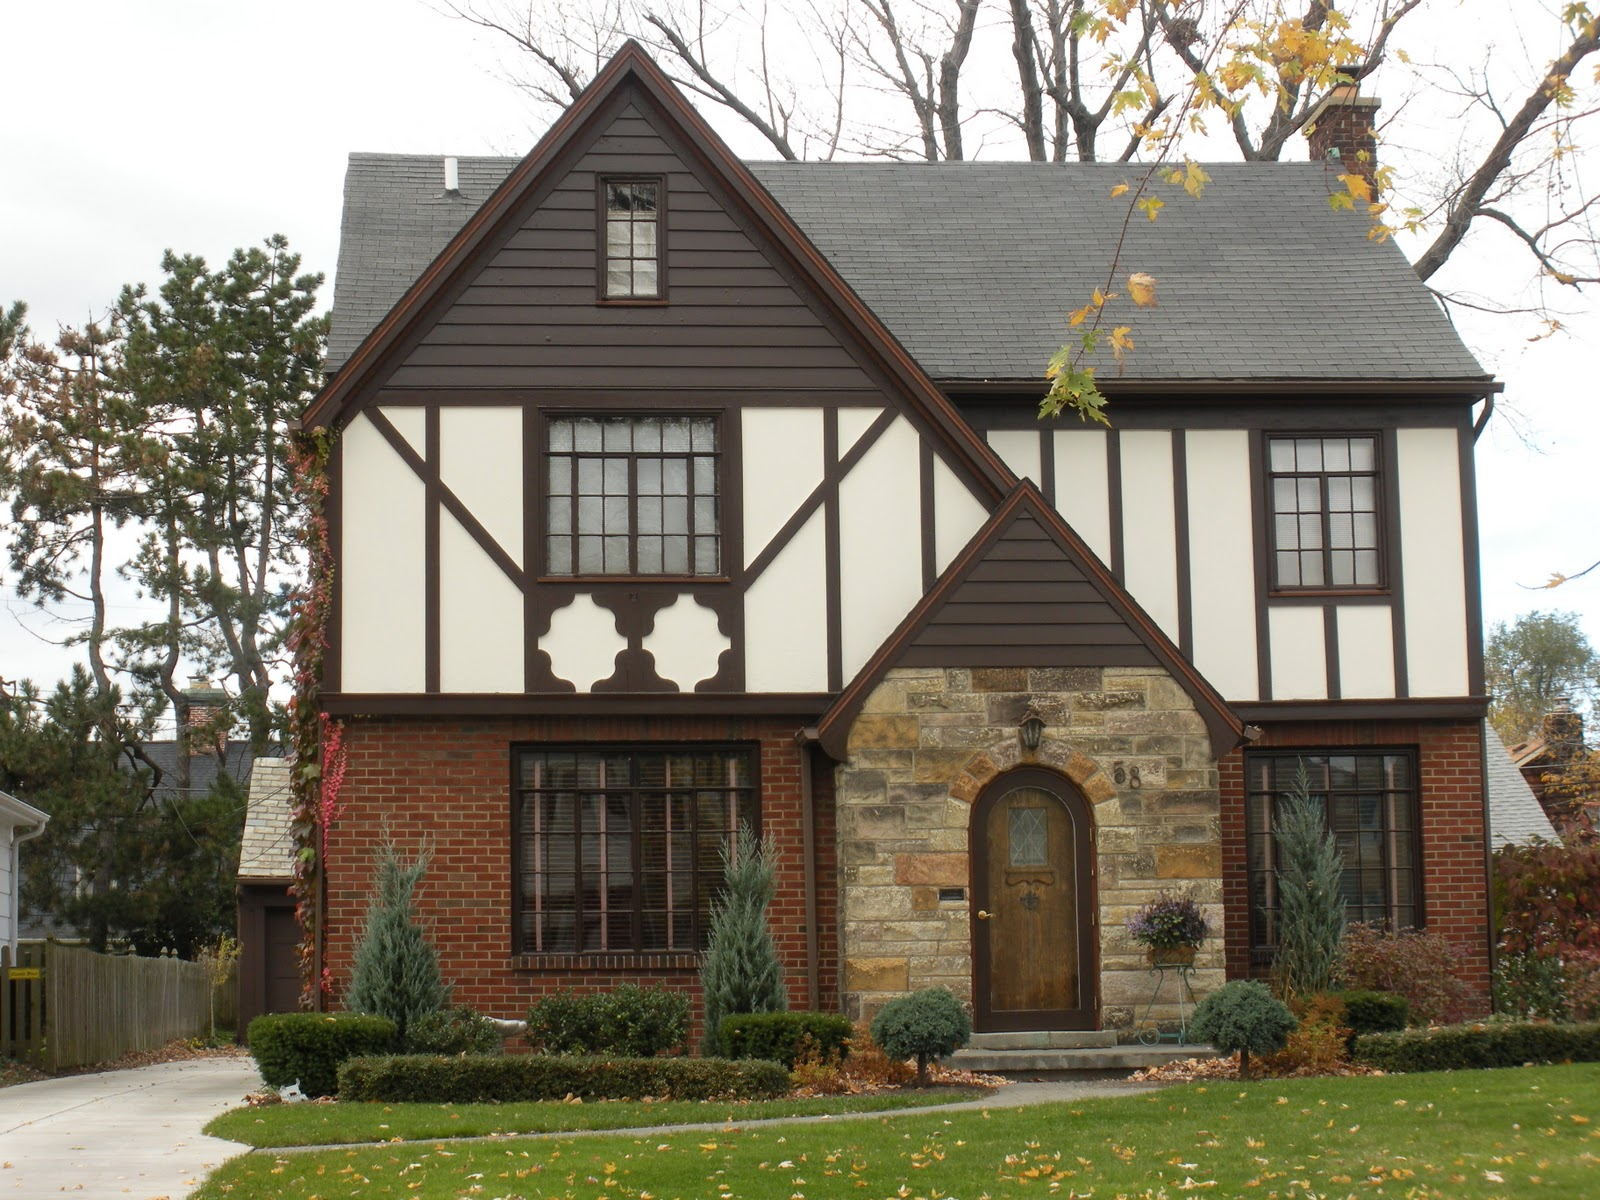 Reinventing the past housing styles of tudor ville and for Different style homes pictures